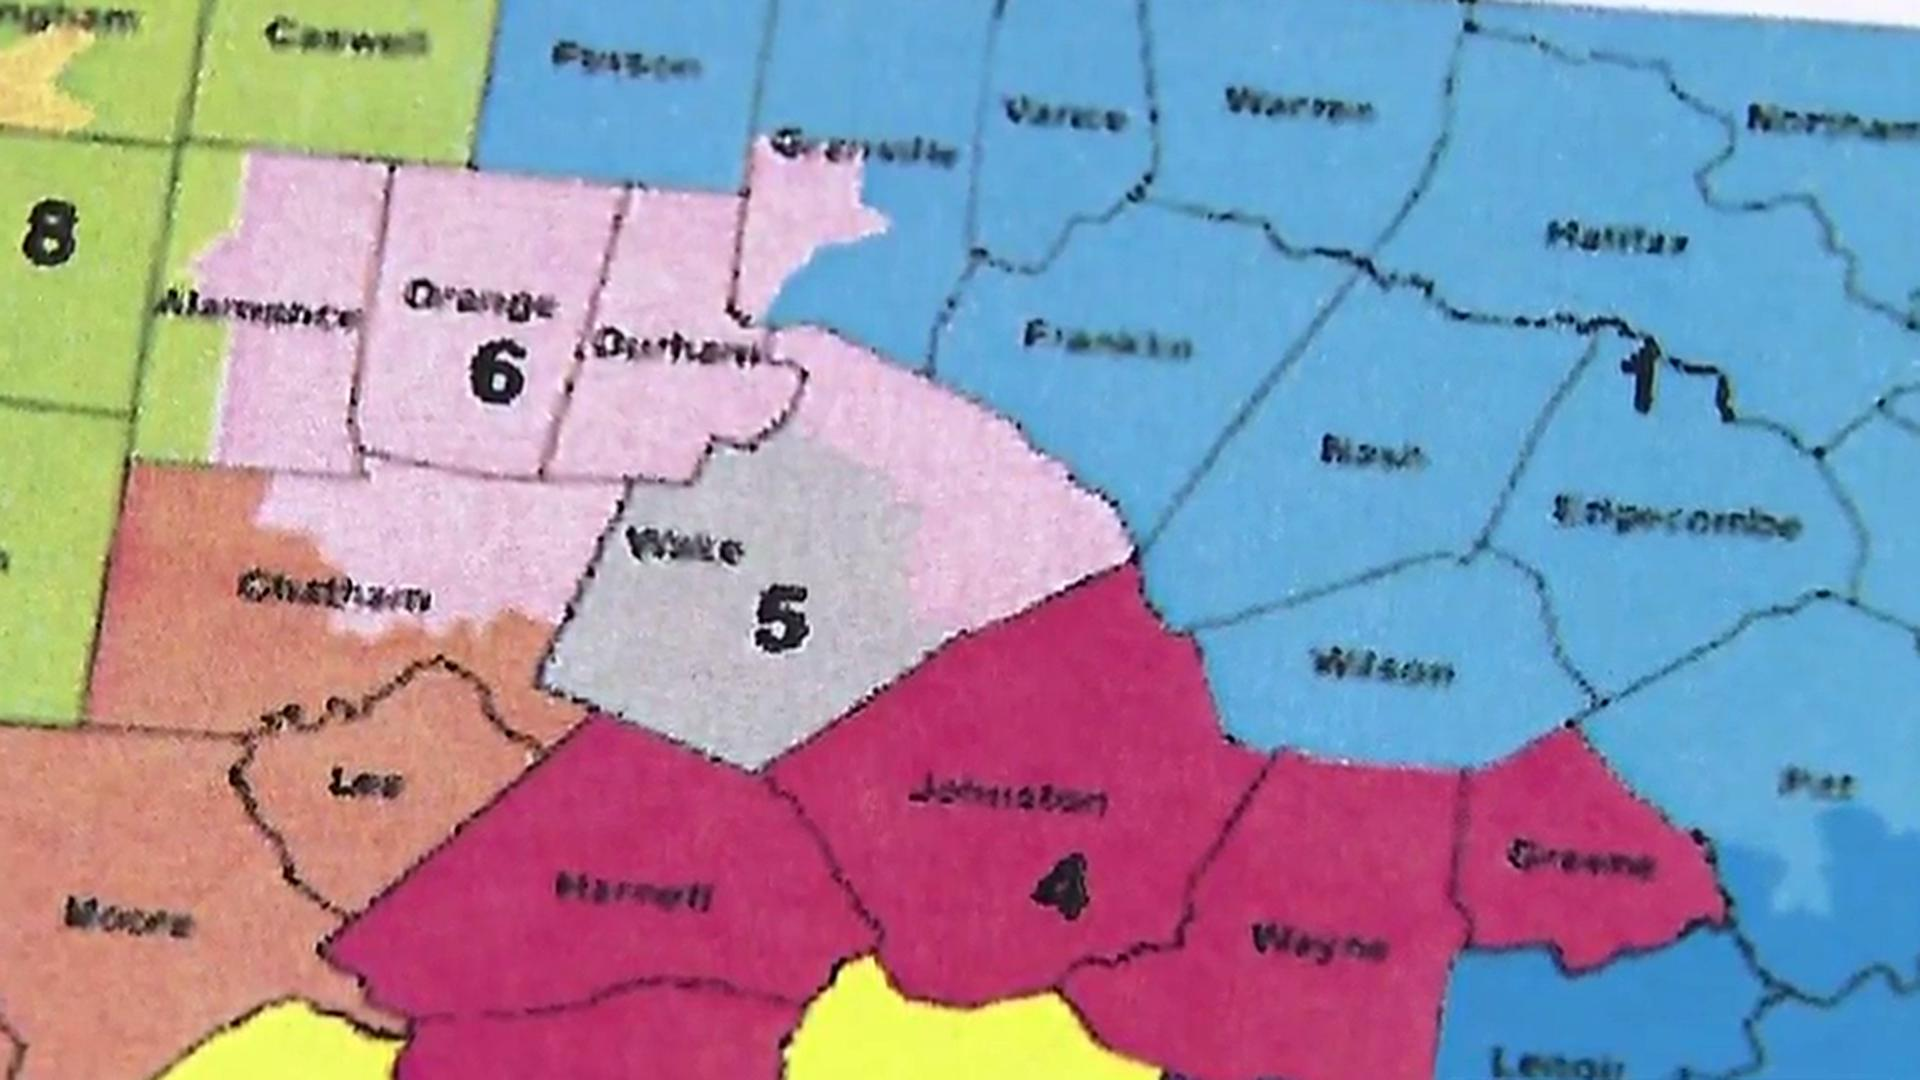 Few like process to redraw NC congressional districts ...